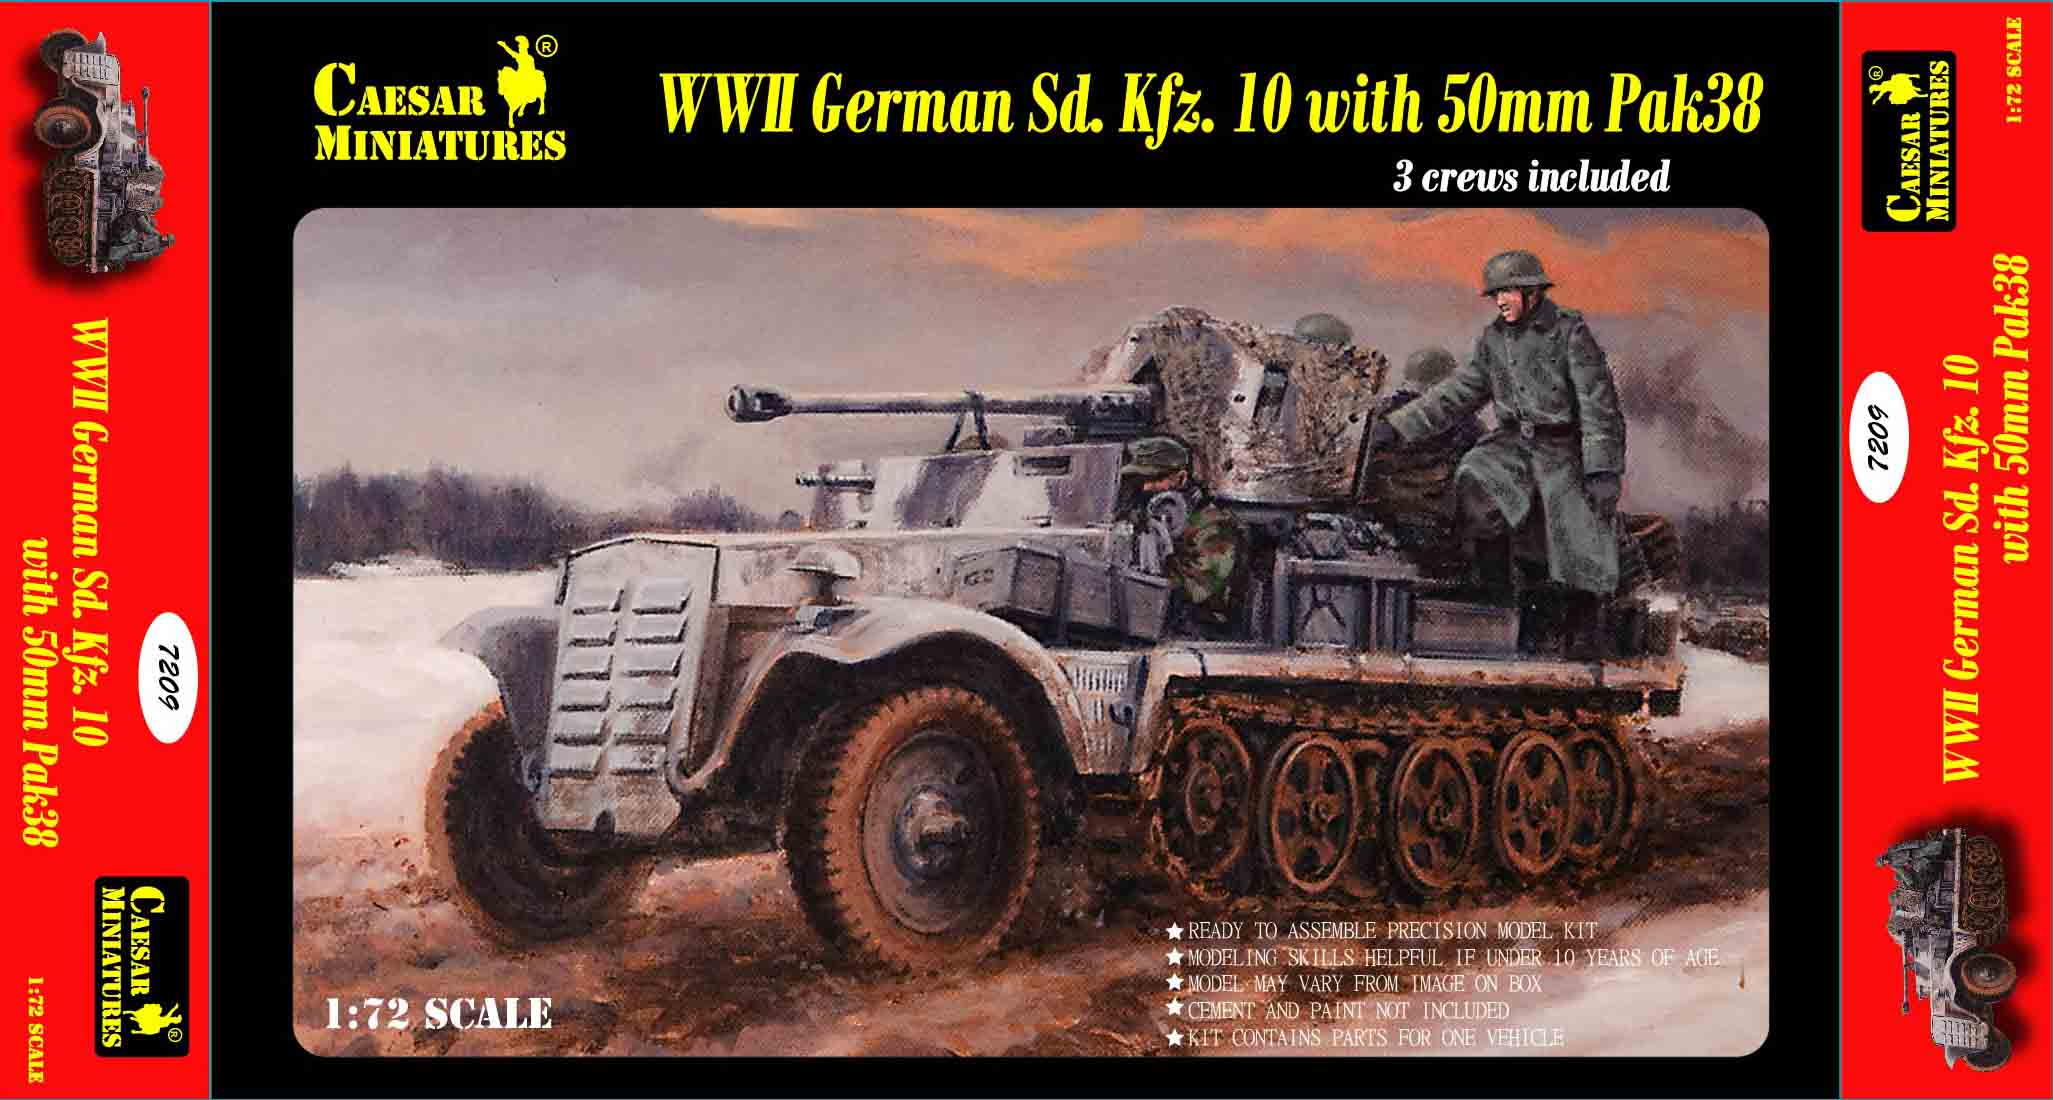 1/72 Caesar 7209 German Sd. Kfz.10 with 50mm Pak 38